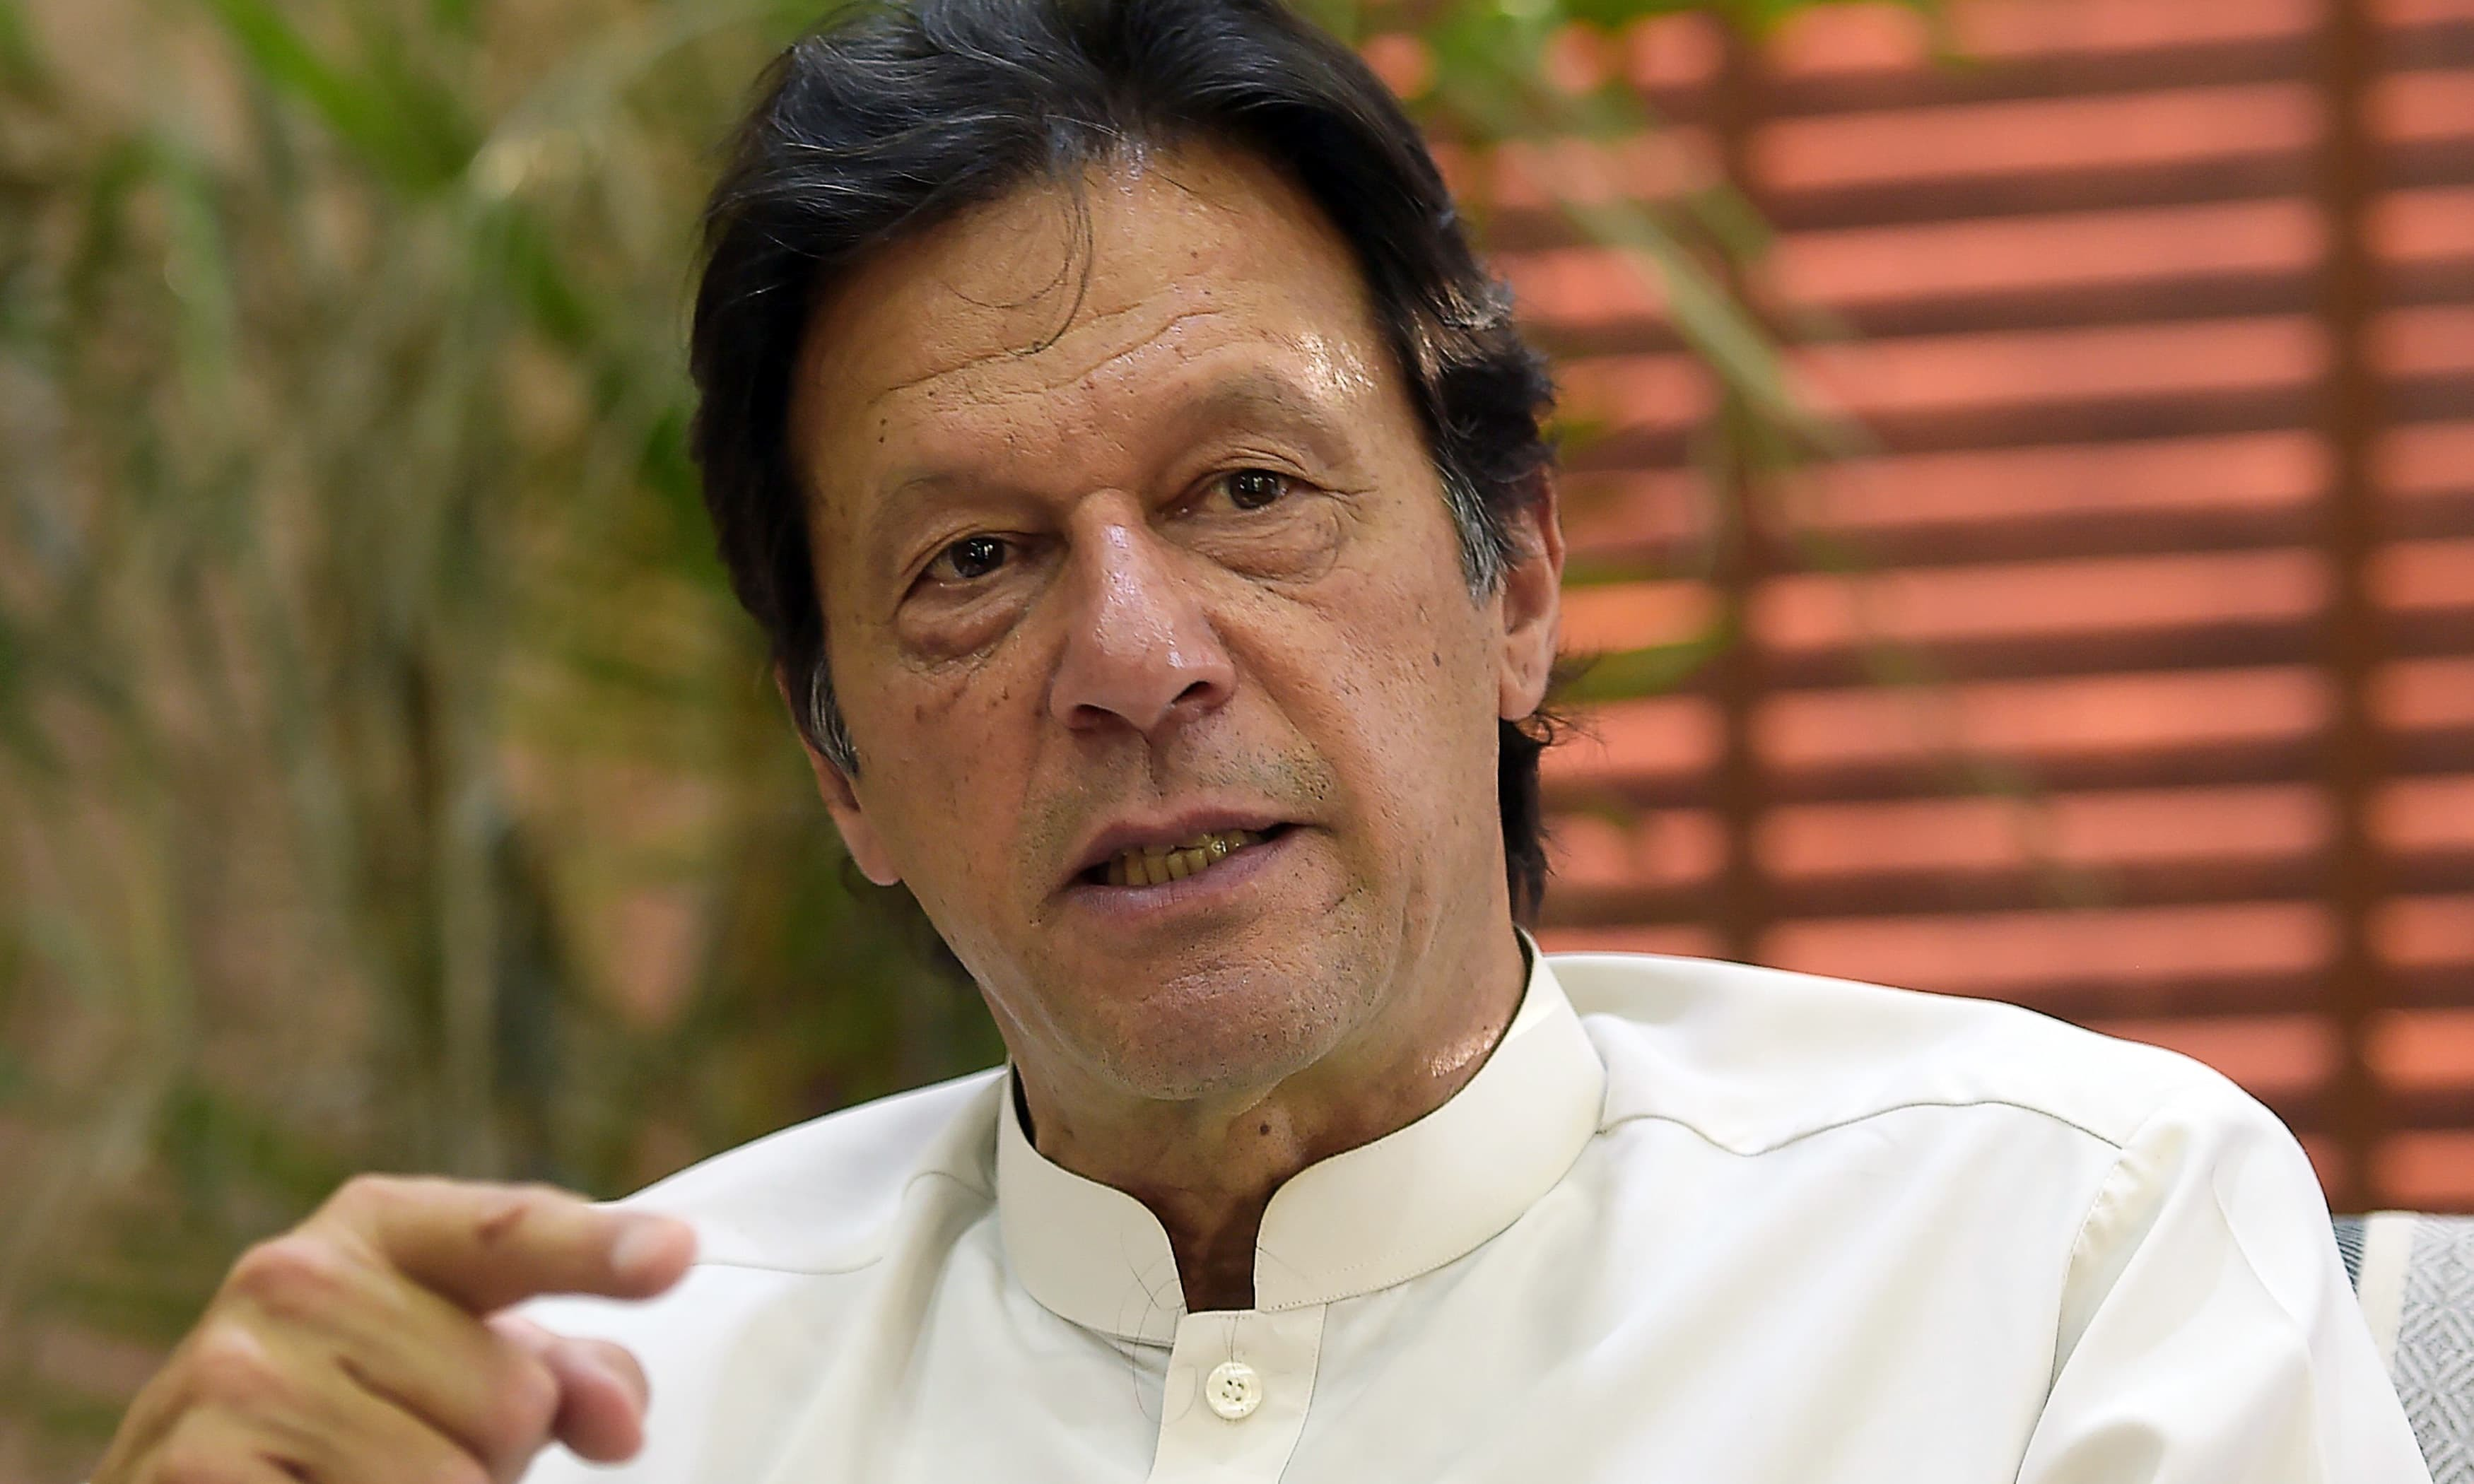 For Pakistan, reforms are the only way forward. But can Imran deliver?